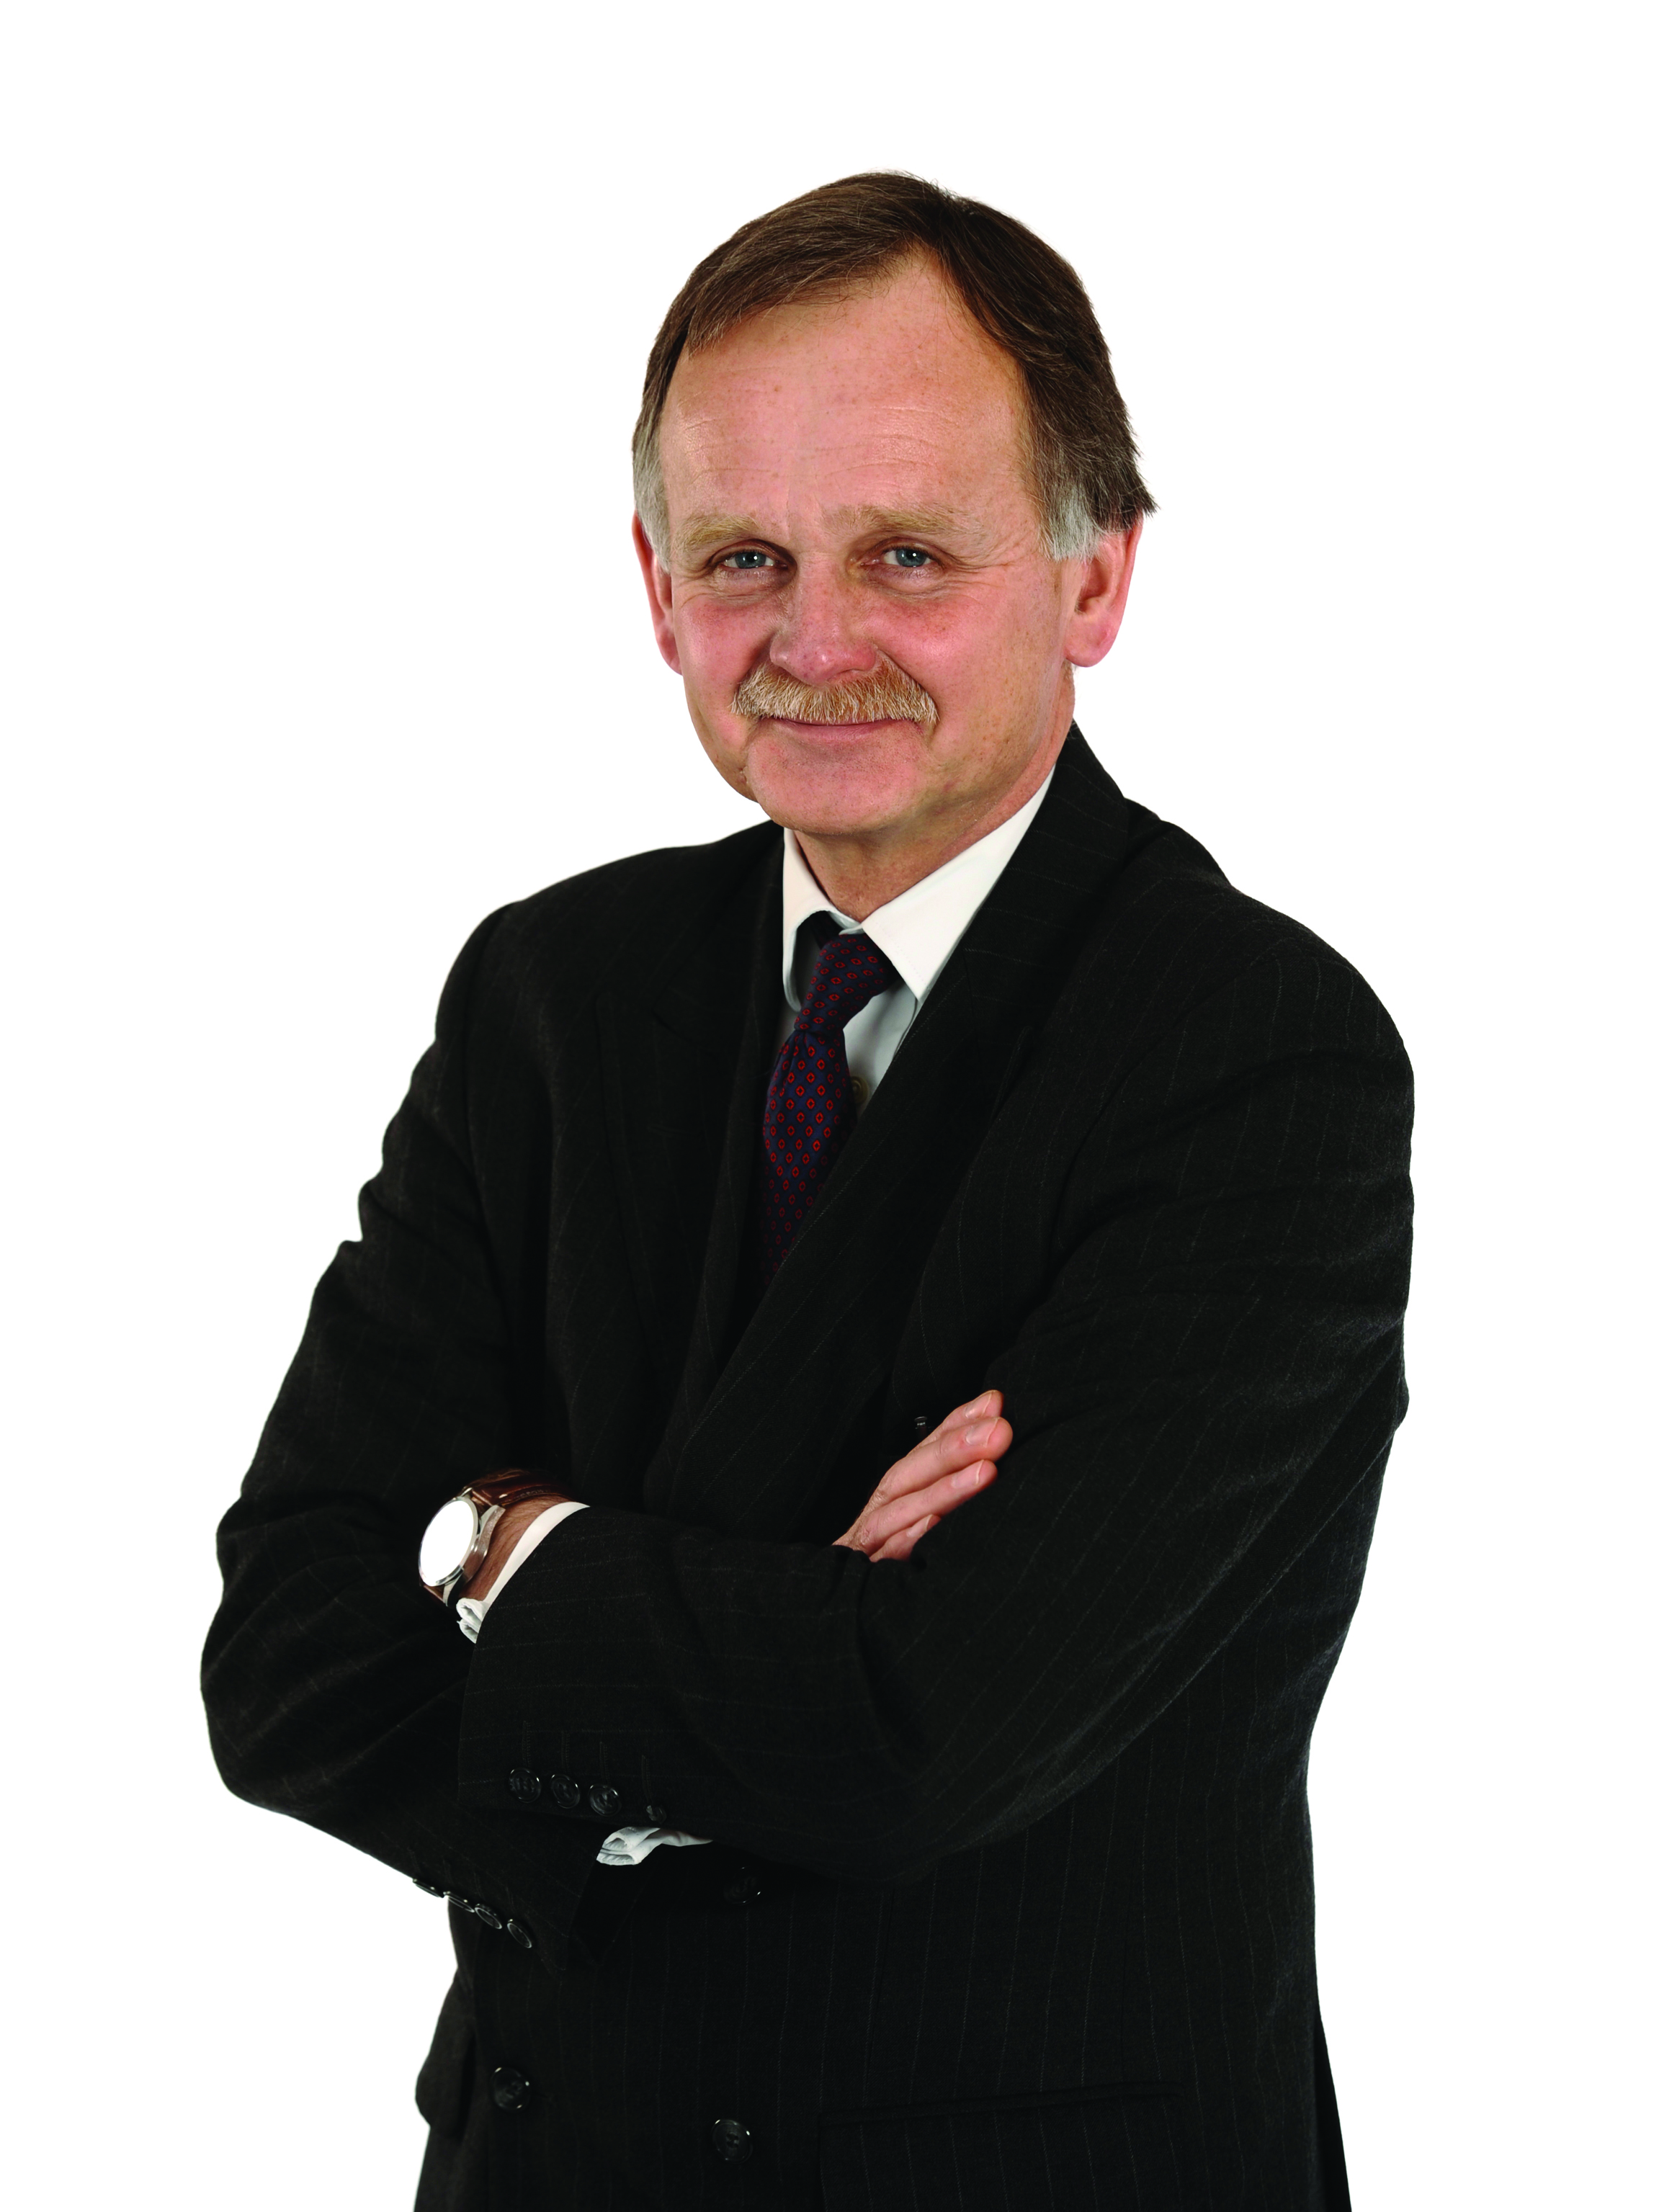 Stephen Tetlow MBE, director general of the Institution of Mechanical Engineers